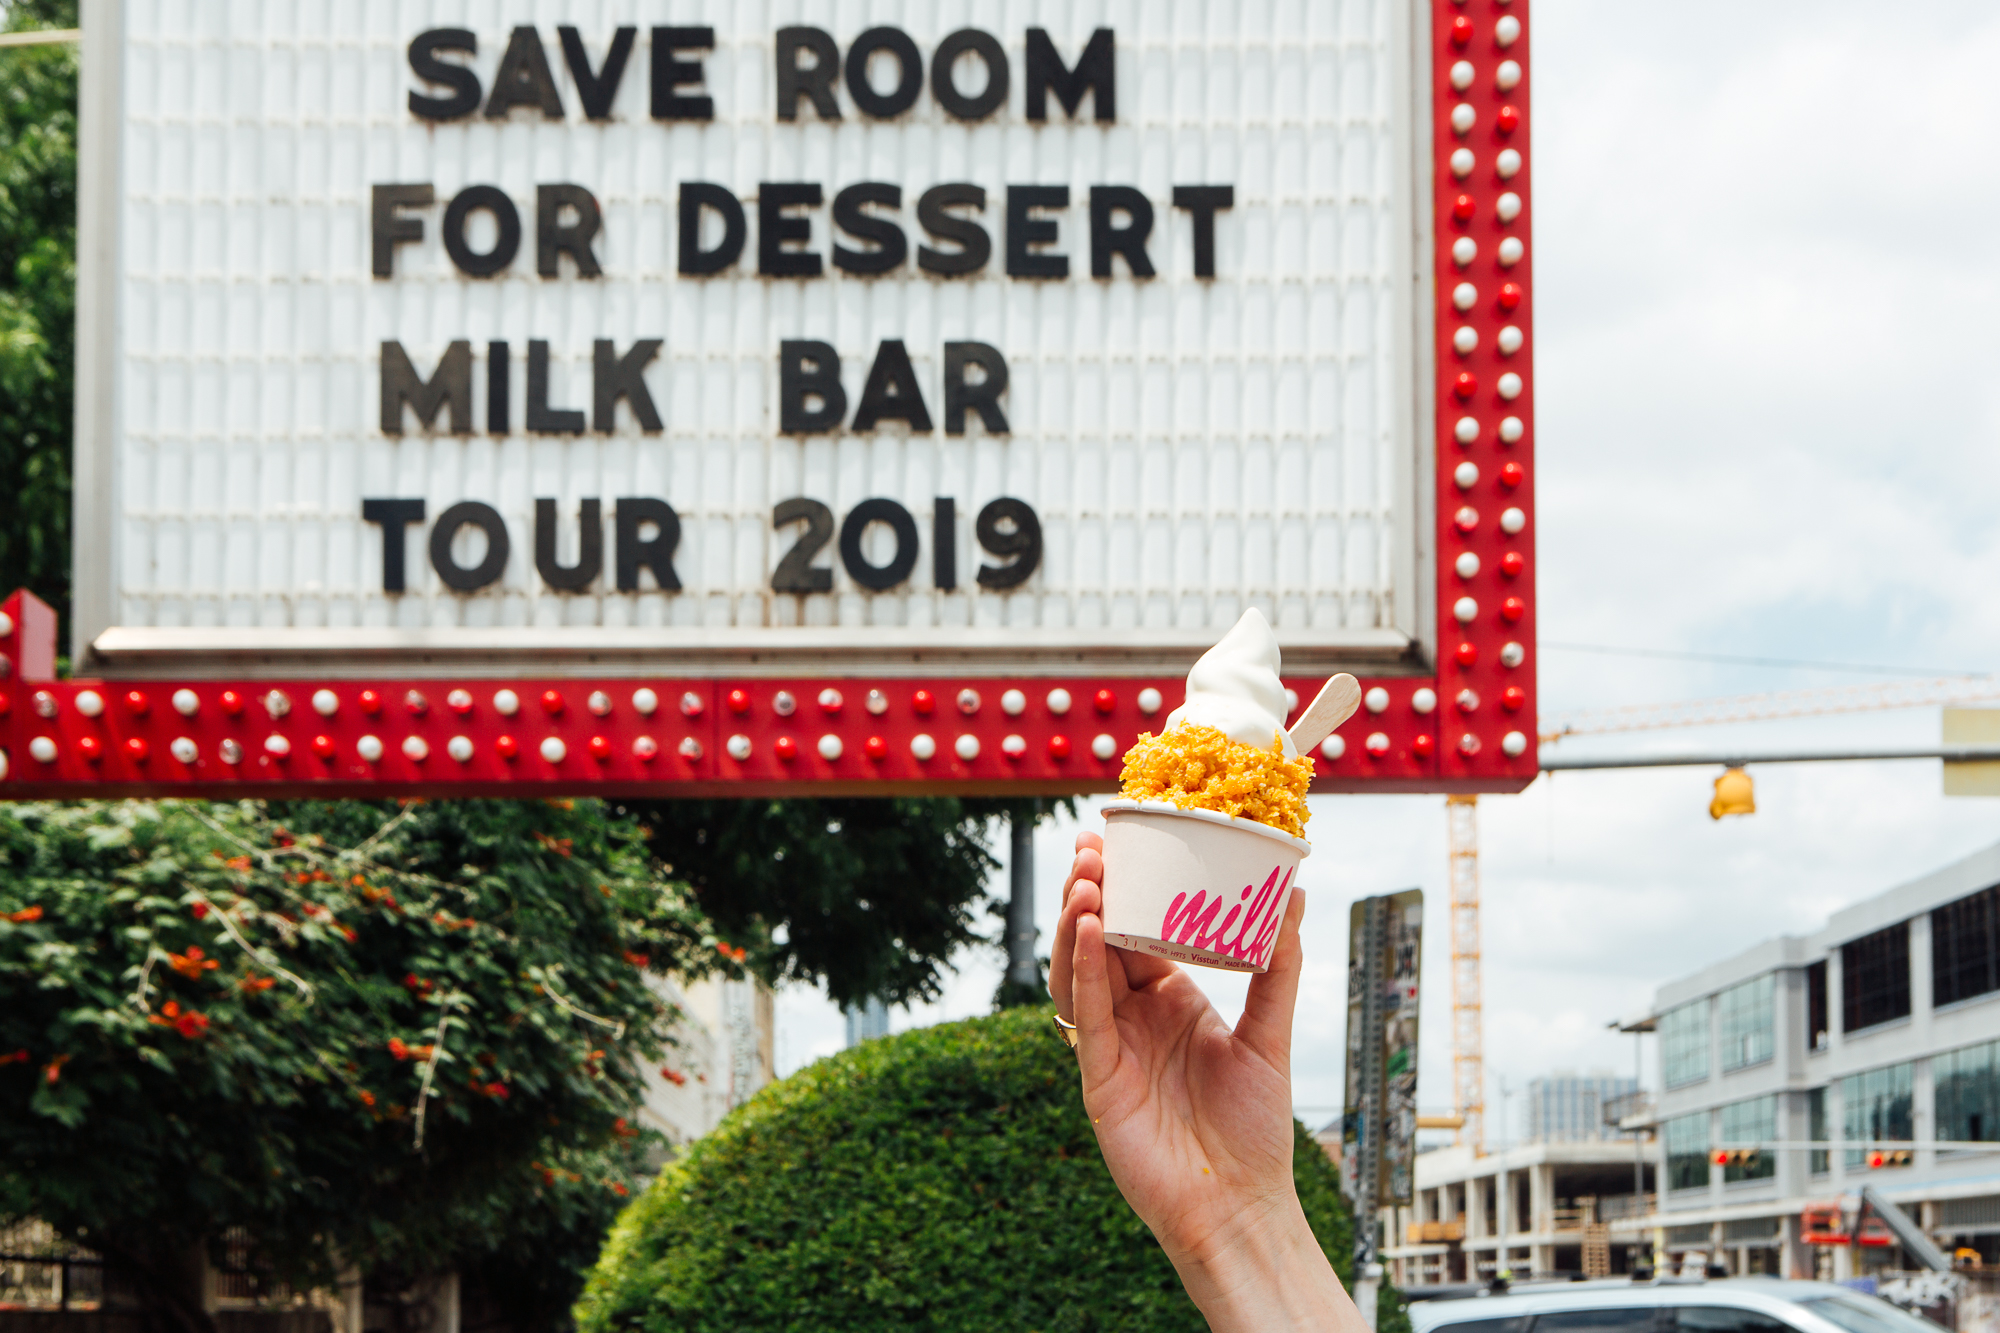 Milk Bar Launches a National Dessert Tour and Minneapolis is One Its Stops